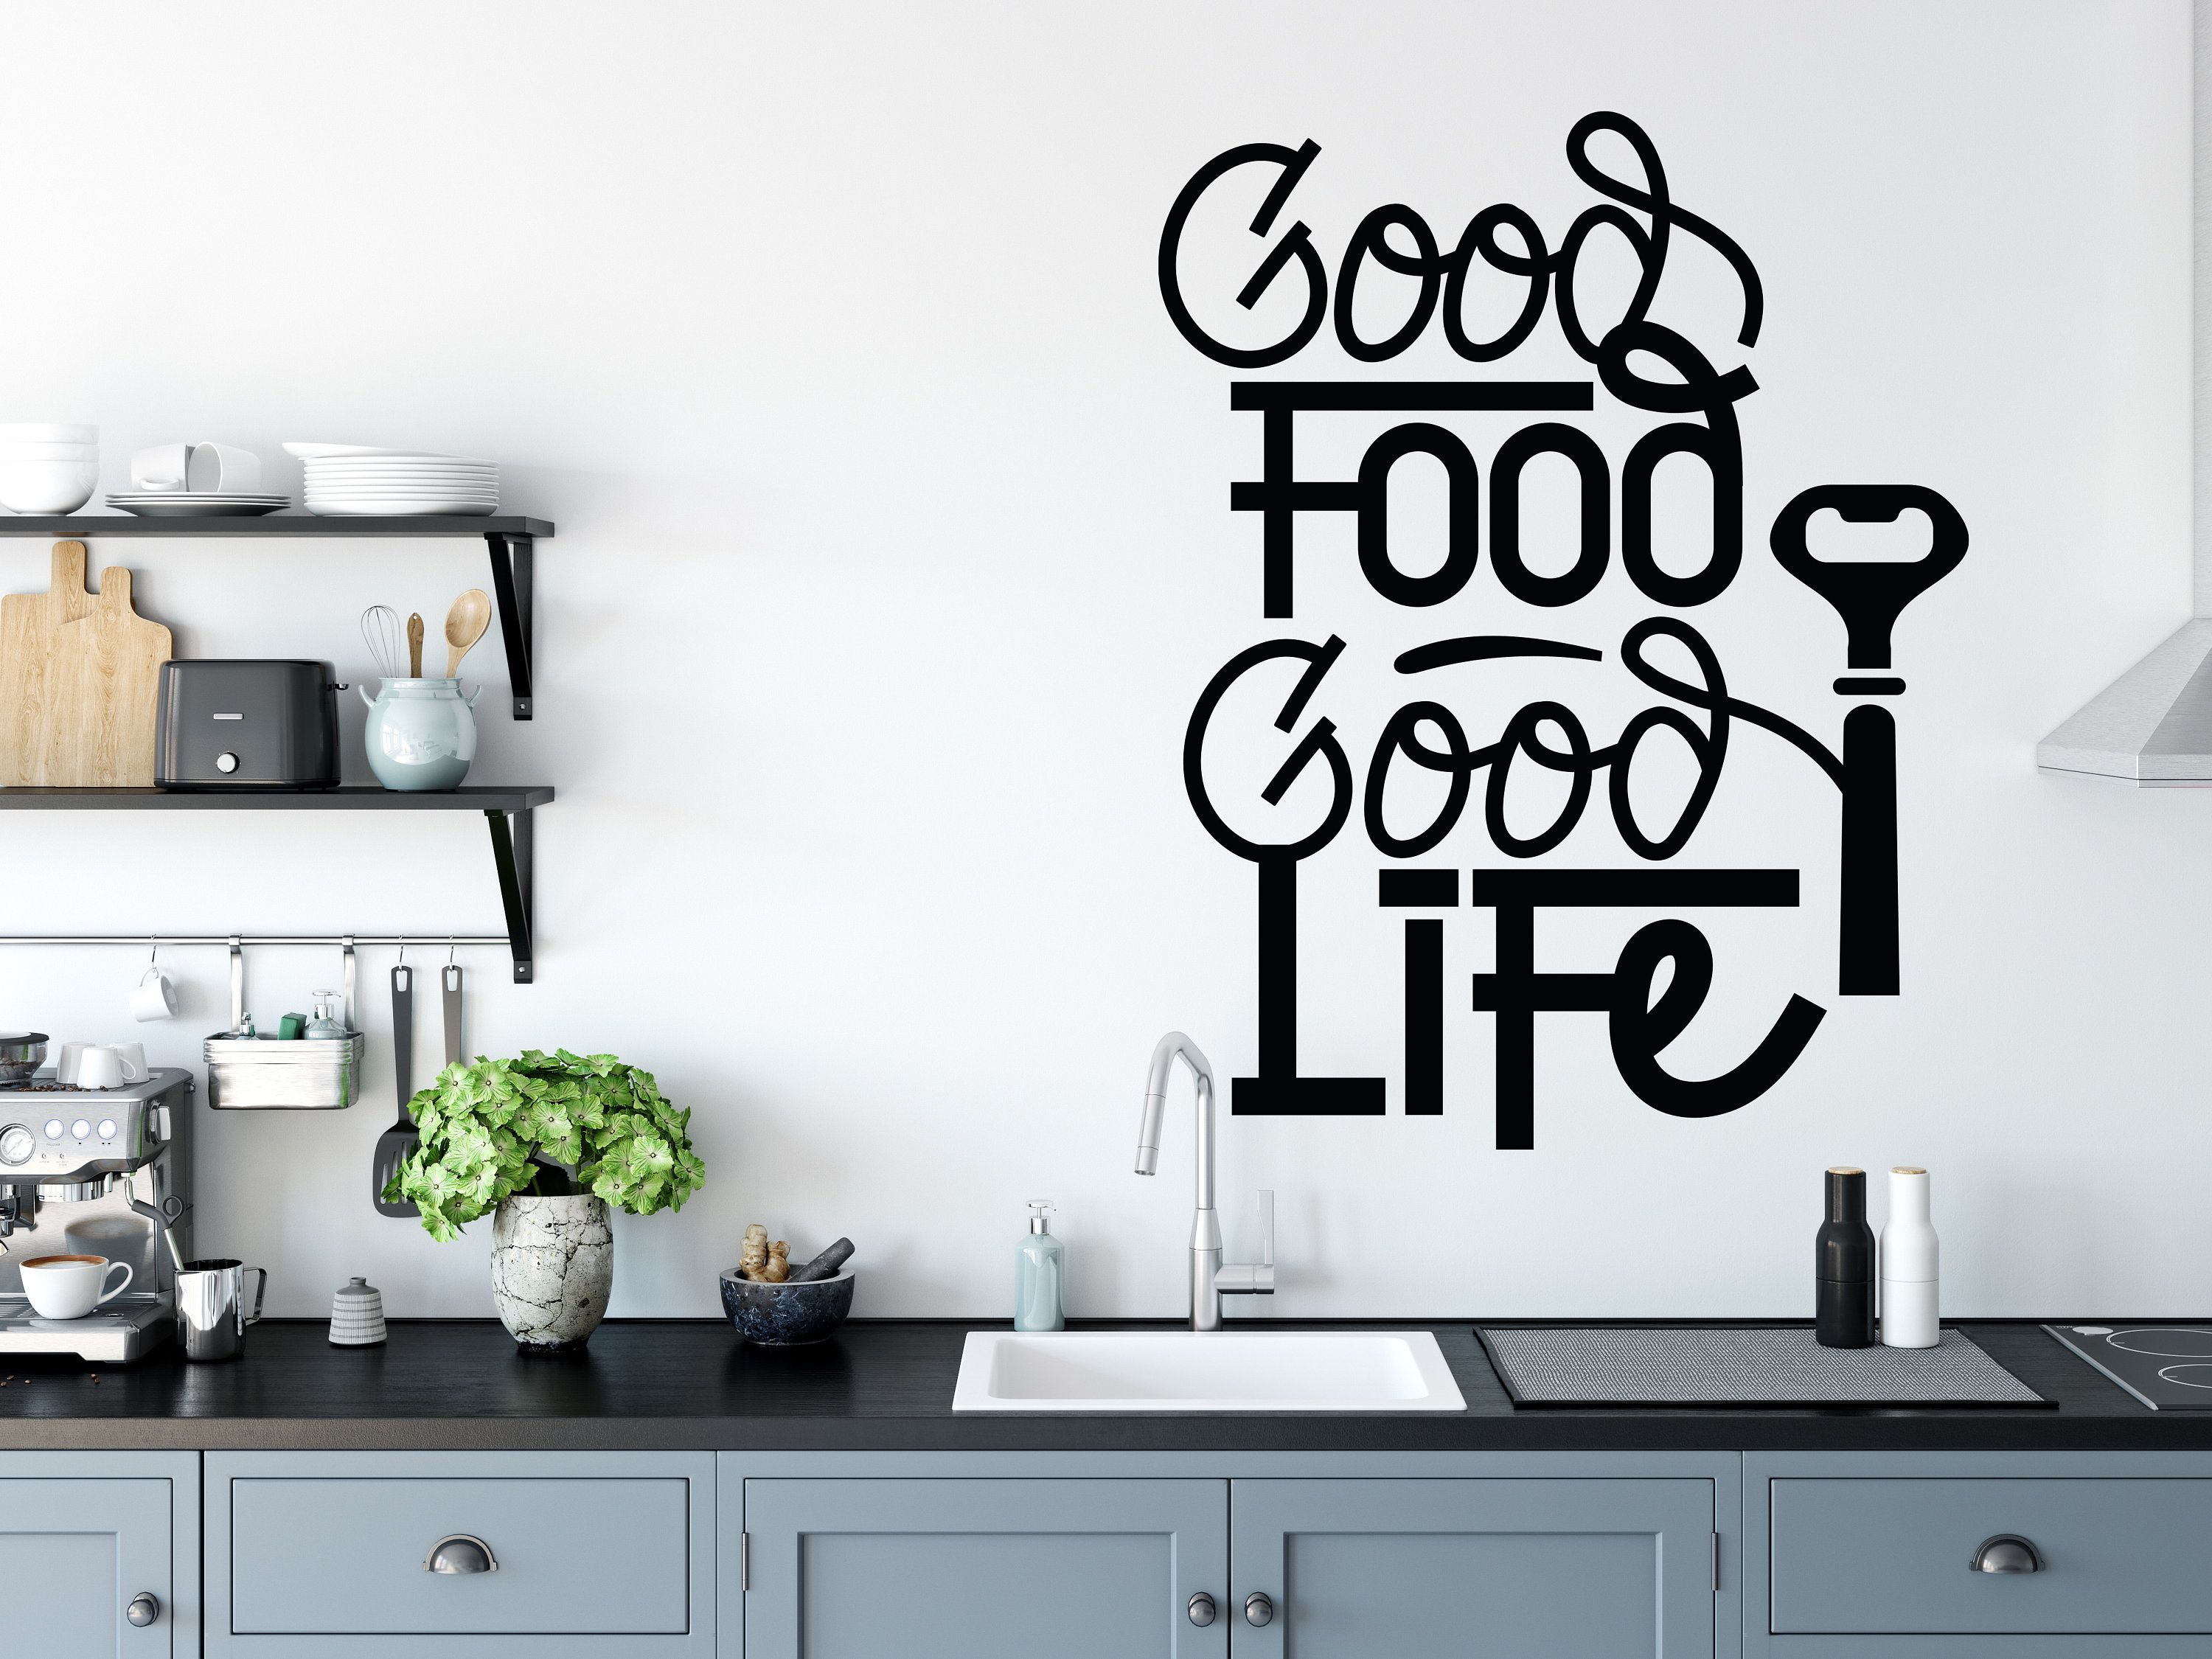 Kitchen Wall Decal Cooking Food Lover Love Etsy Decals Stickers Baby Animal Prints